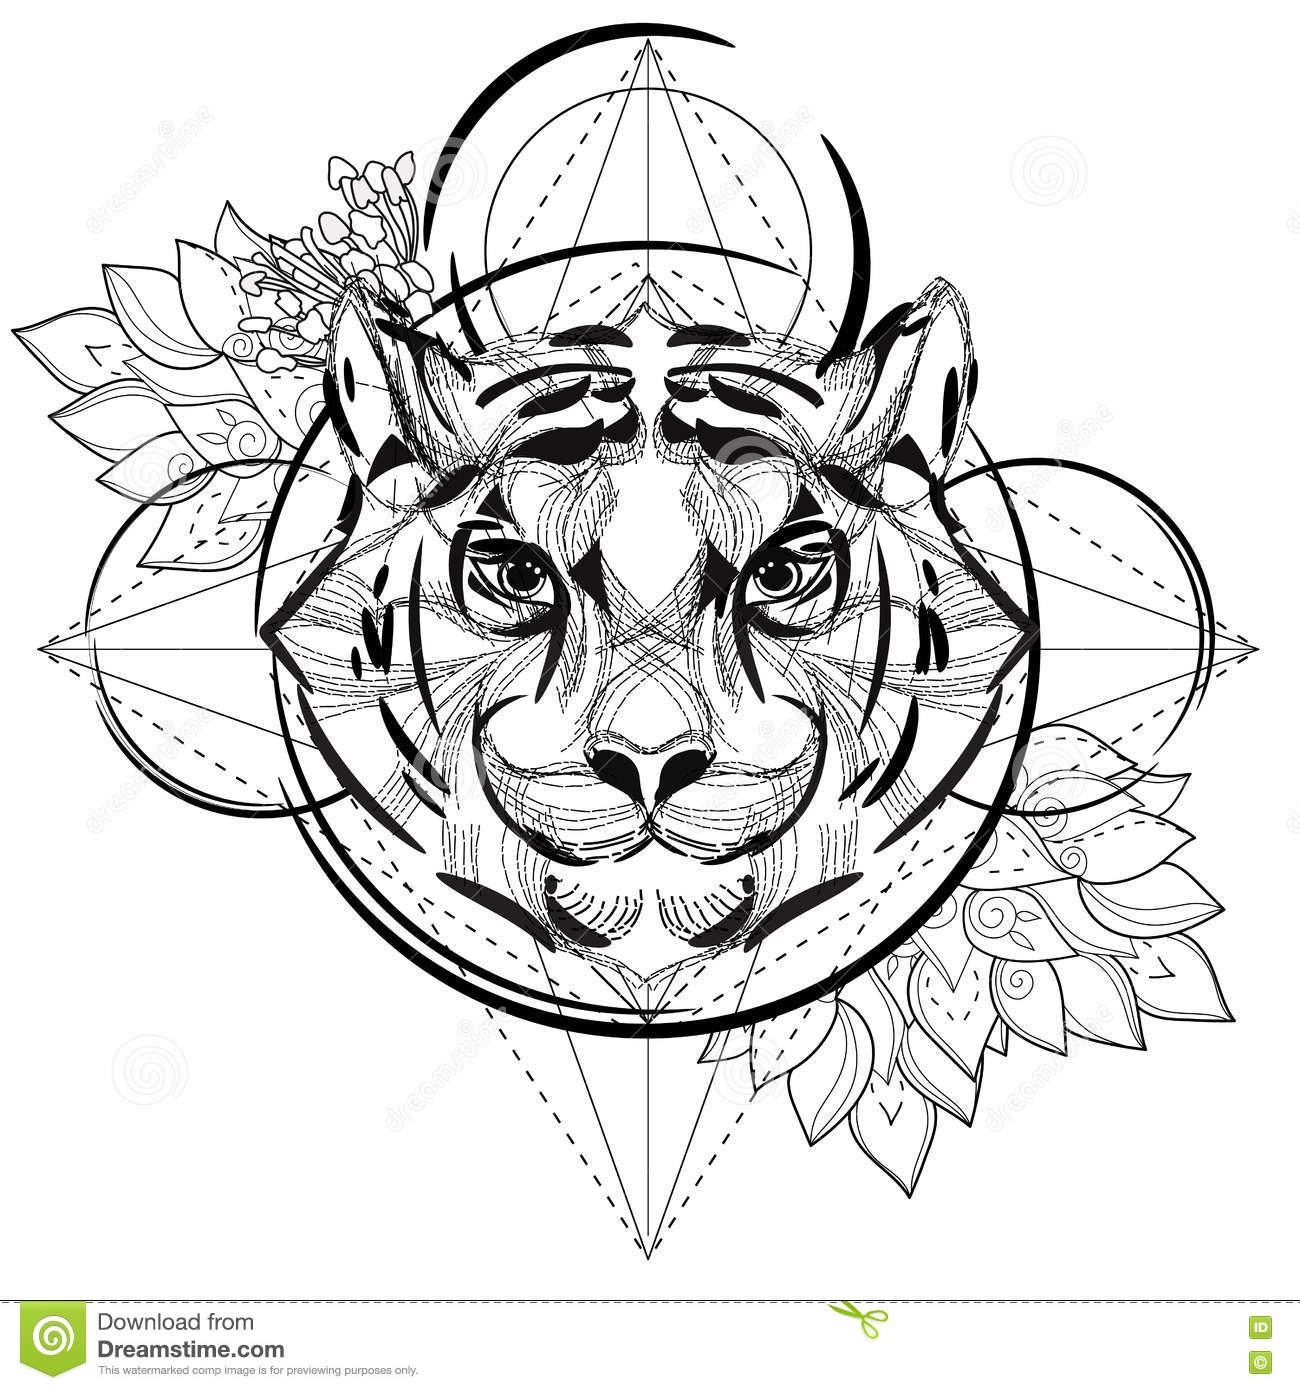 Tiger head triangular icon geometric trendy stock vector image - Royalty Free Vector Animal Coloring Design Geometric Head Icon Illustration Low Poly Tattoo Tiger Trendy Triangular